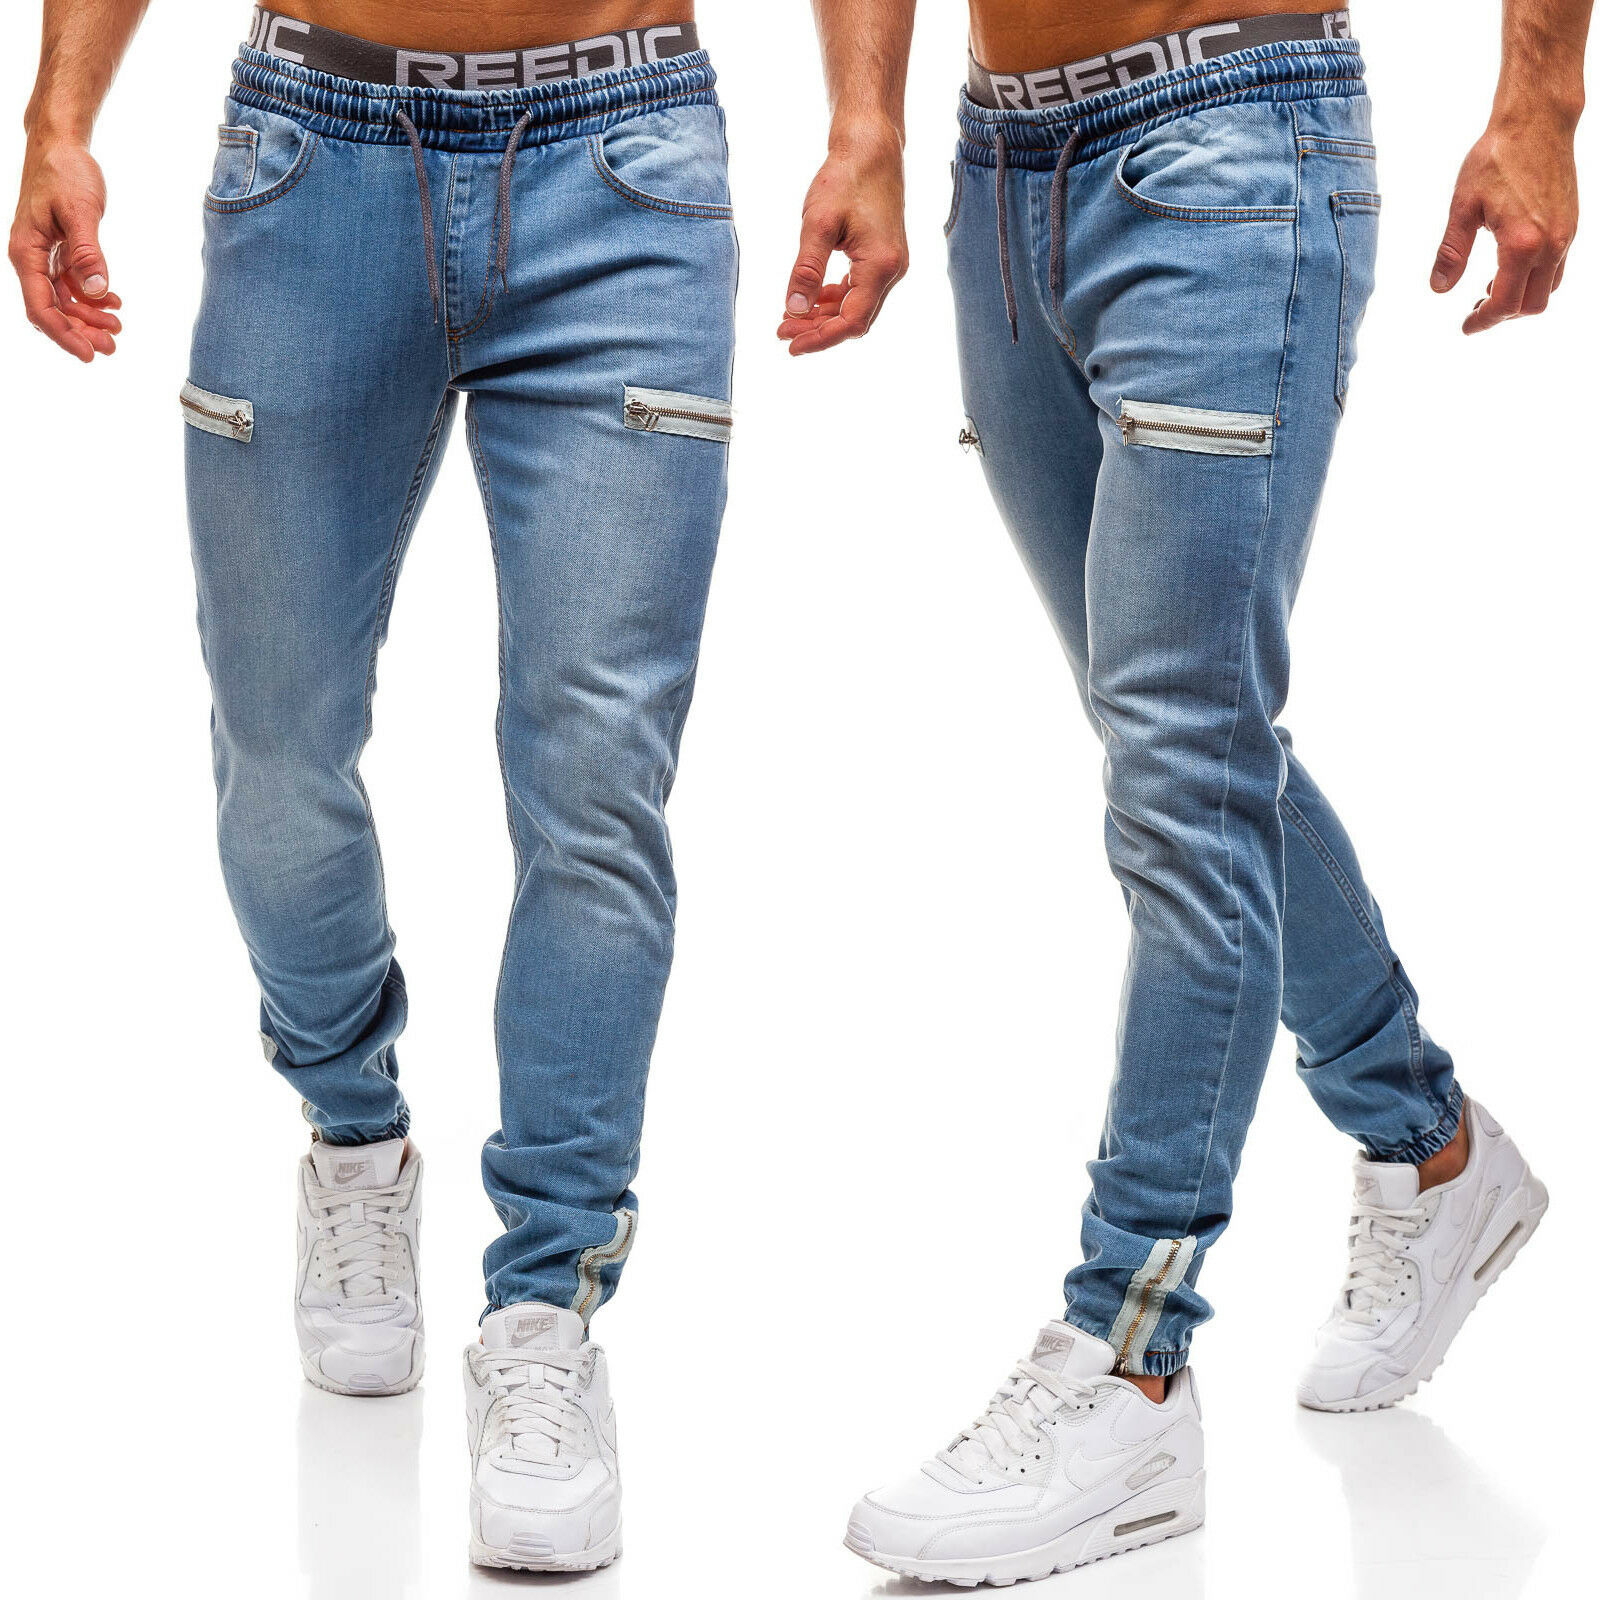 Hot Selling Europe And America Men Jean Fabric Casual Dull Polish Zipper Design Sports Jeans Men's T354